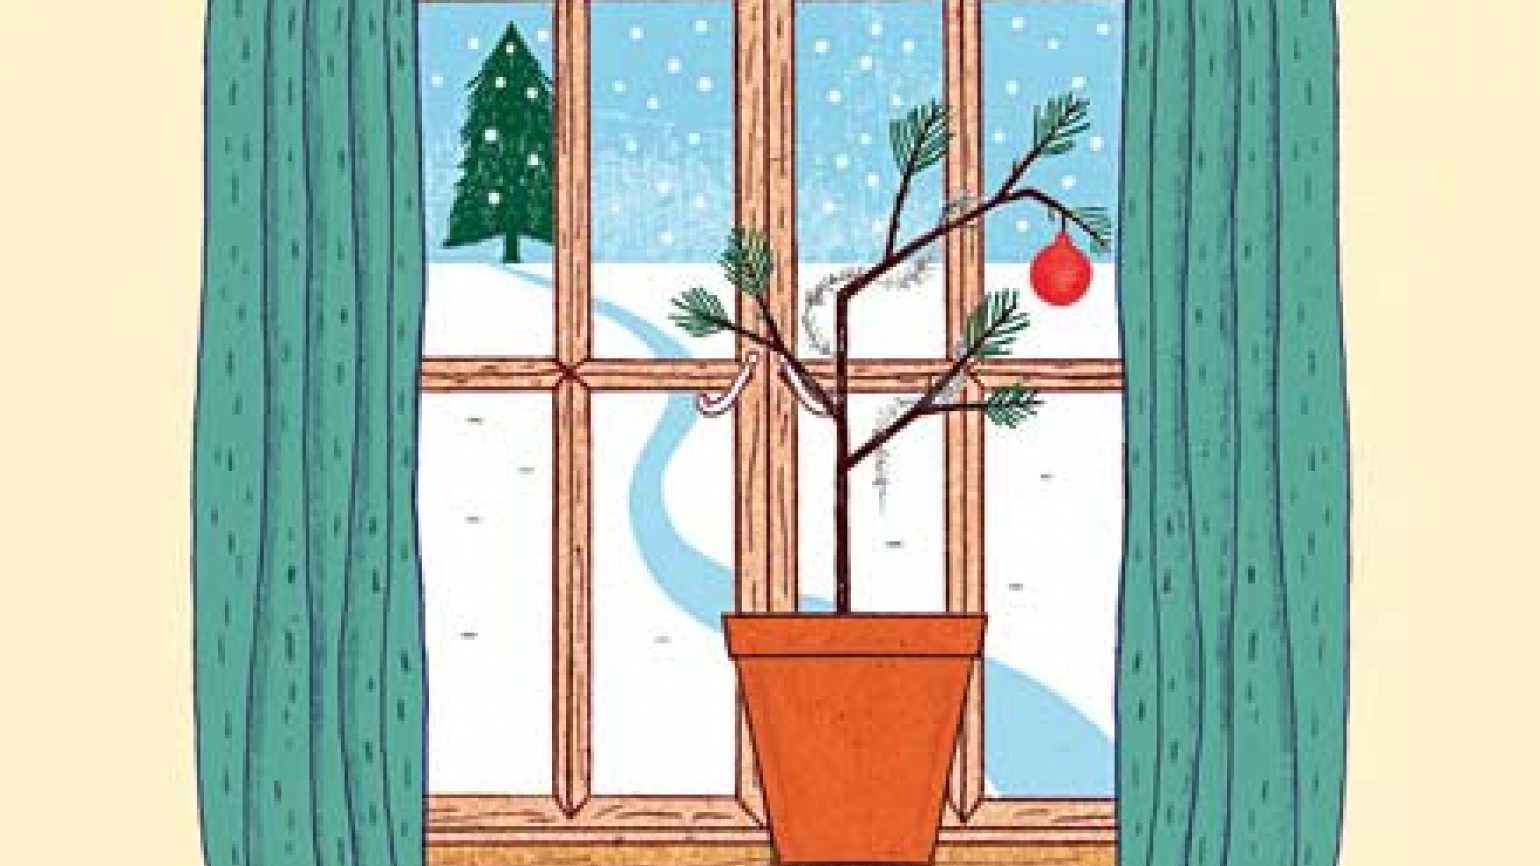 A tiny, sparse tree on a windowsill looks out on a snowy January day.